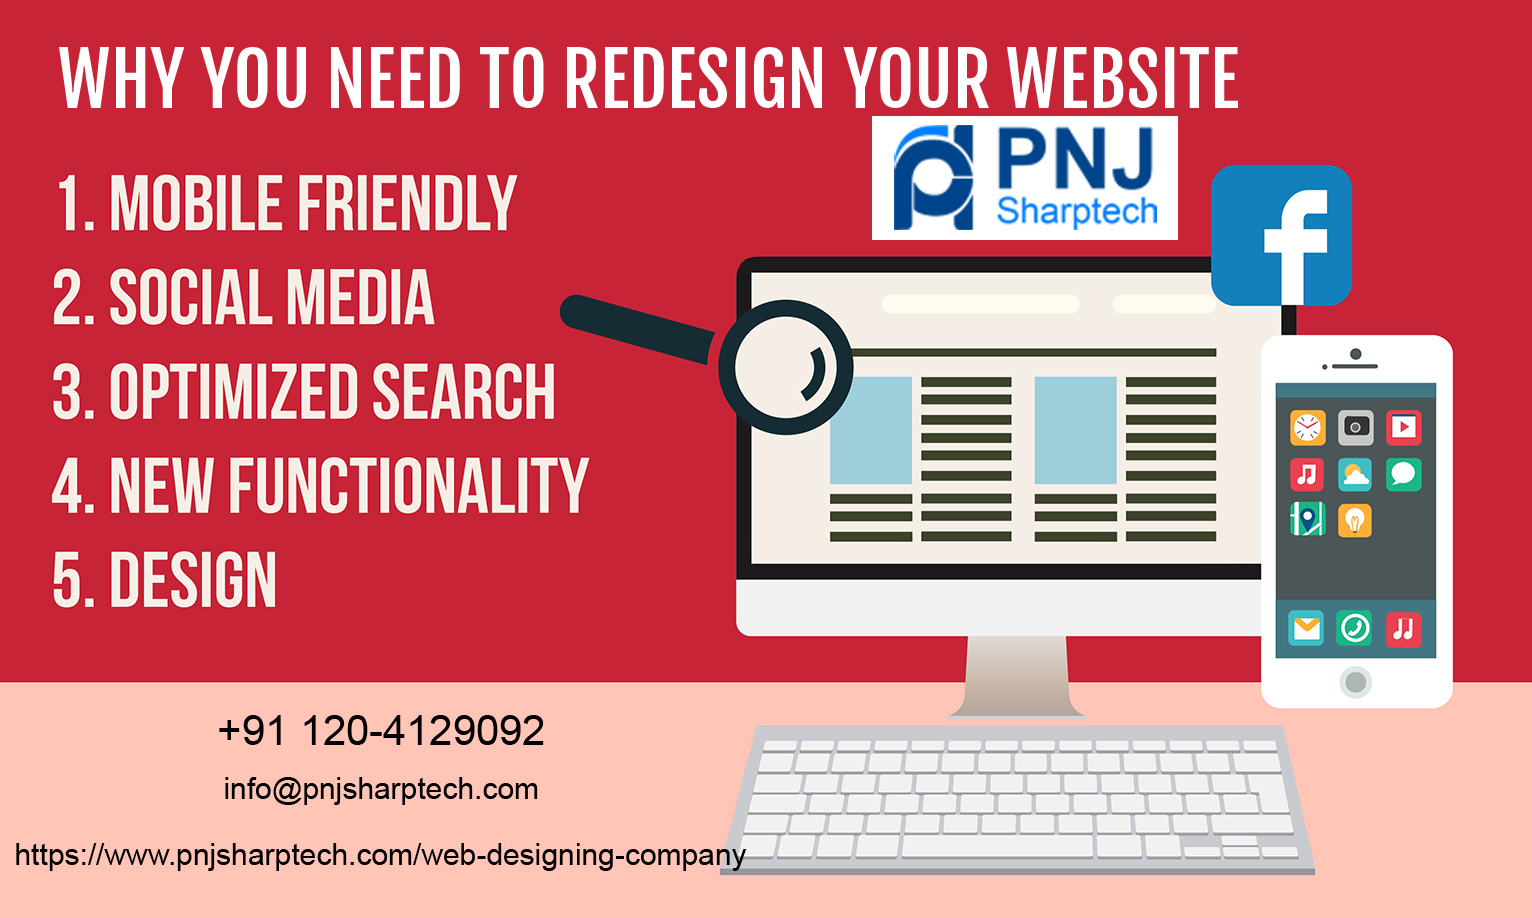 Basic Reason Why You Need to Redesign Your Website